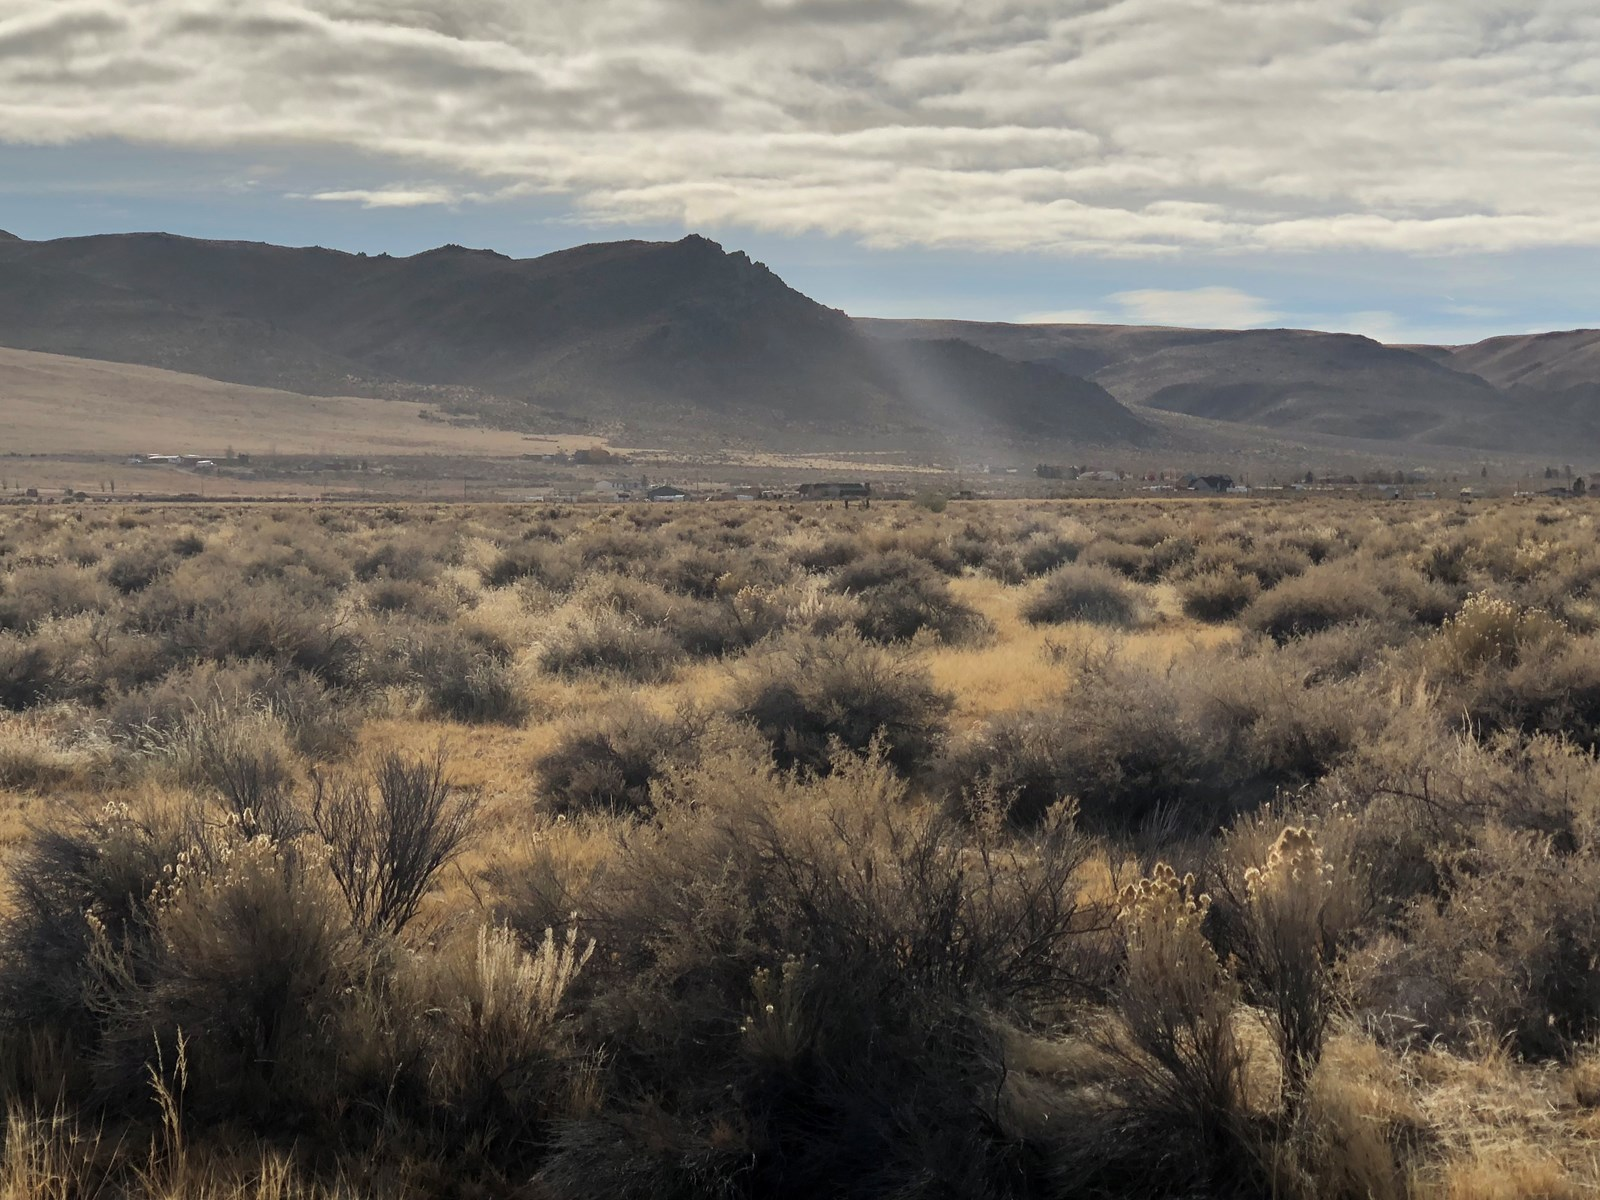 37+ Acres Ranch land For Sale in Western Nevada near Reno